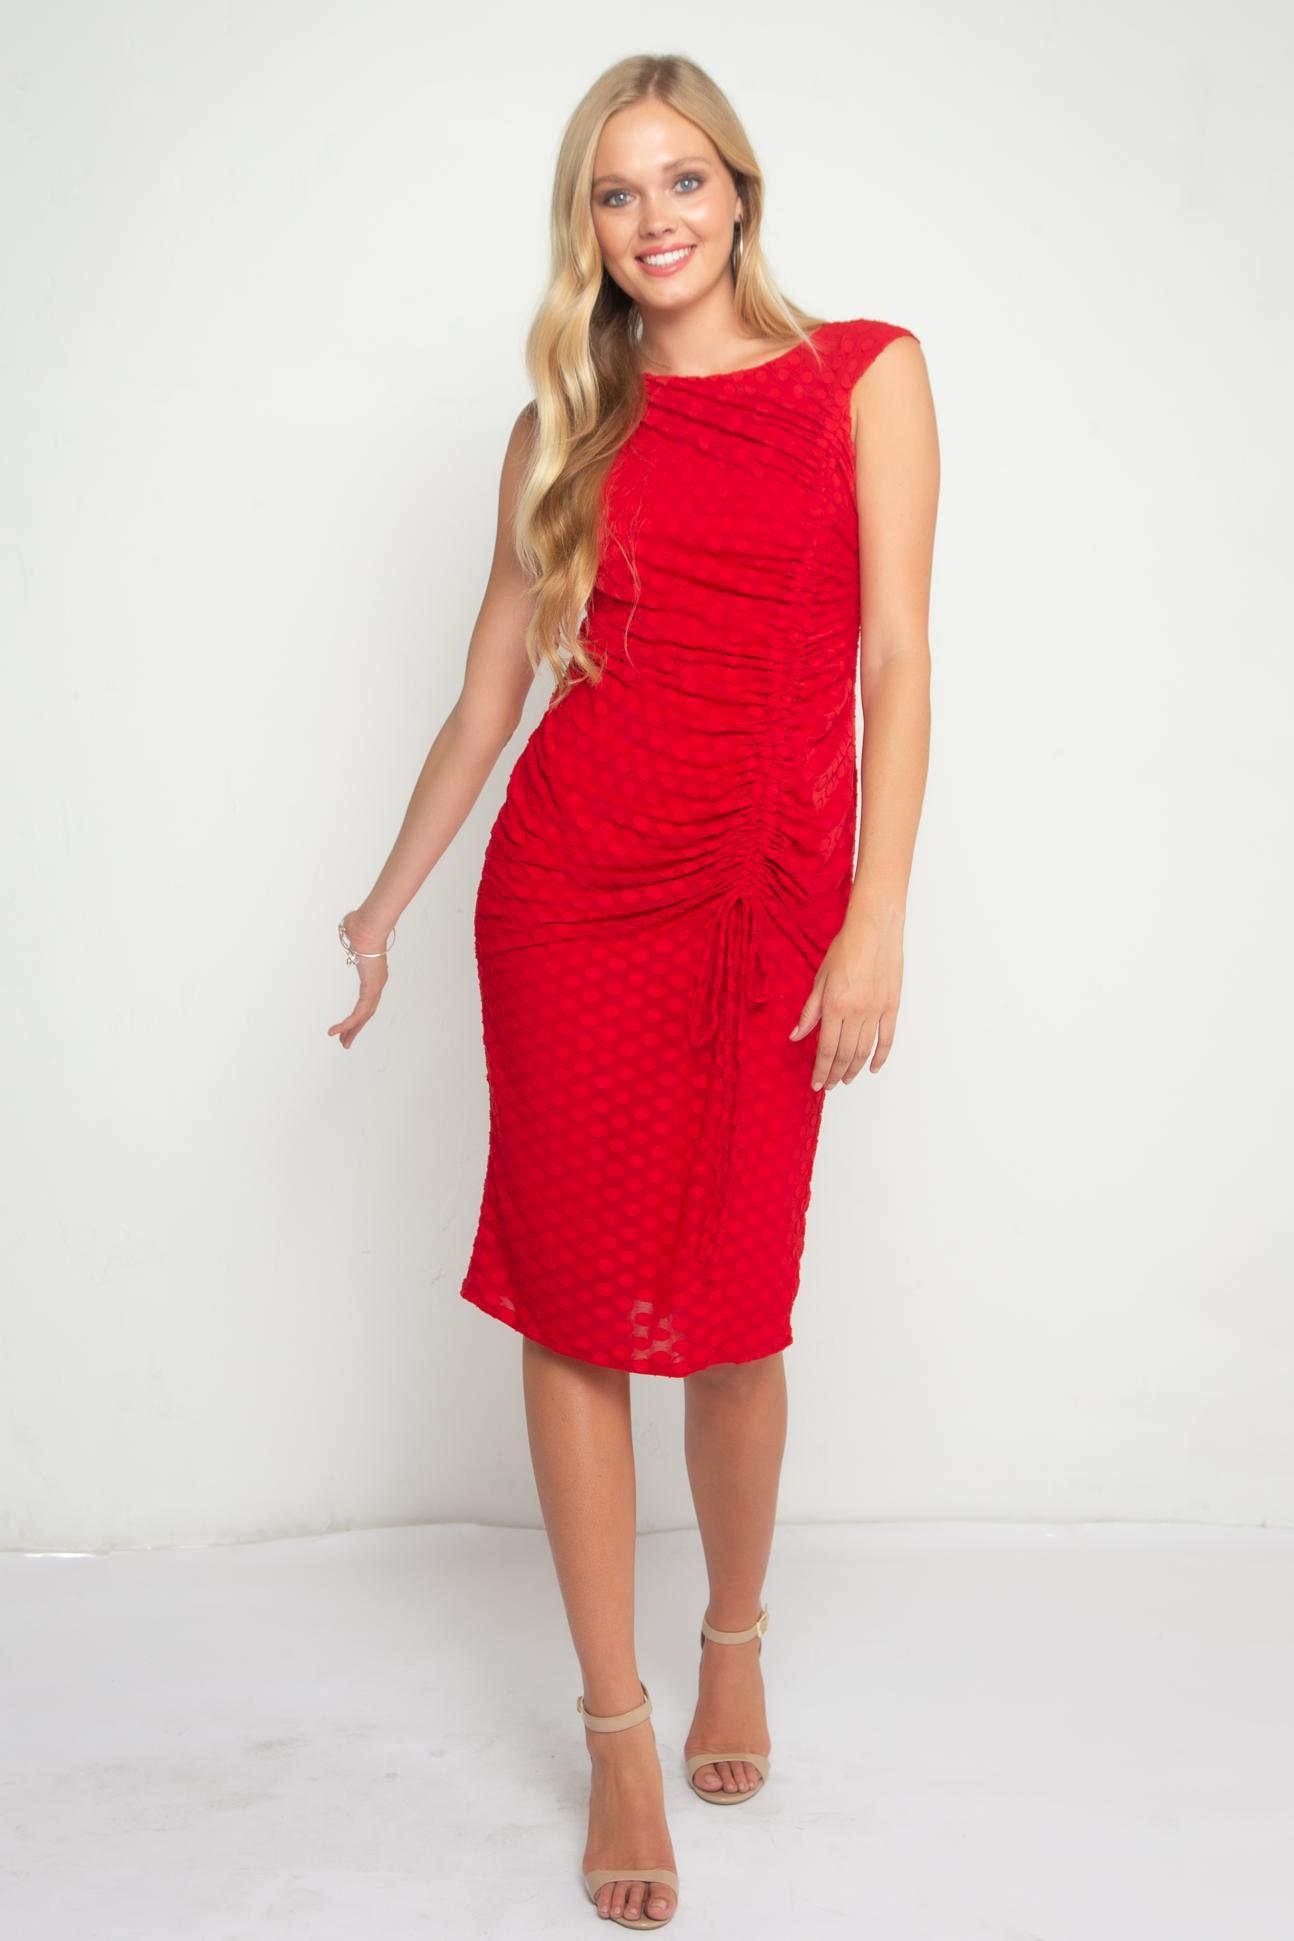 Eva Franco Dress Urchin Cinched Midi Dress – Red